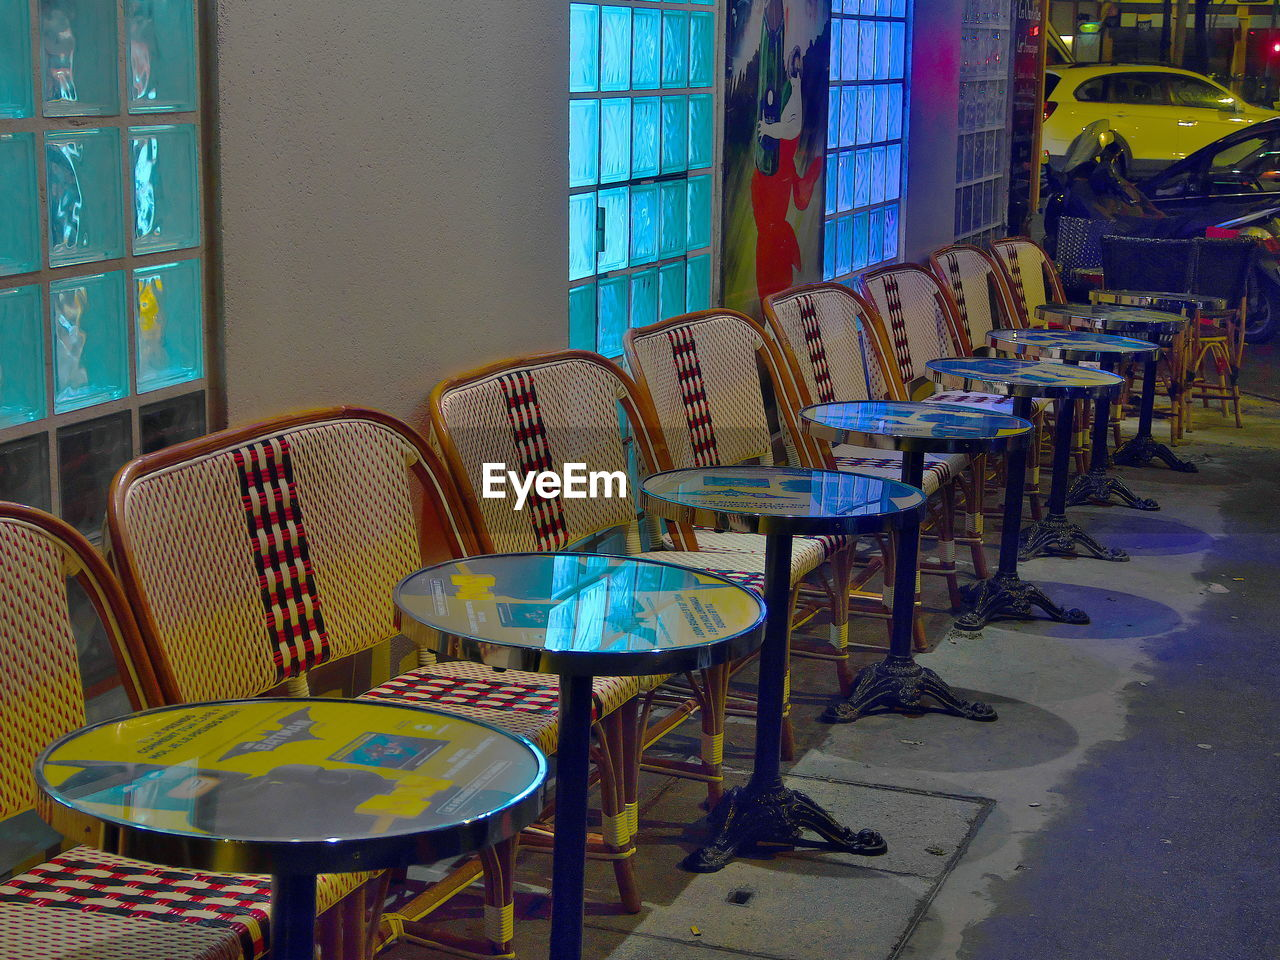 EMPTY CHAIRS AND TABLE IN STADIUM